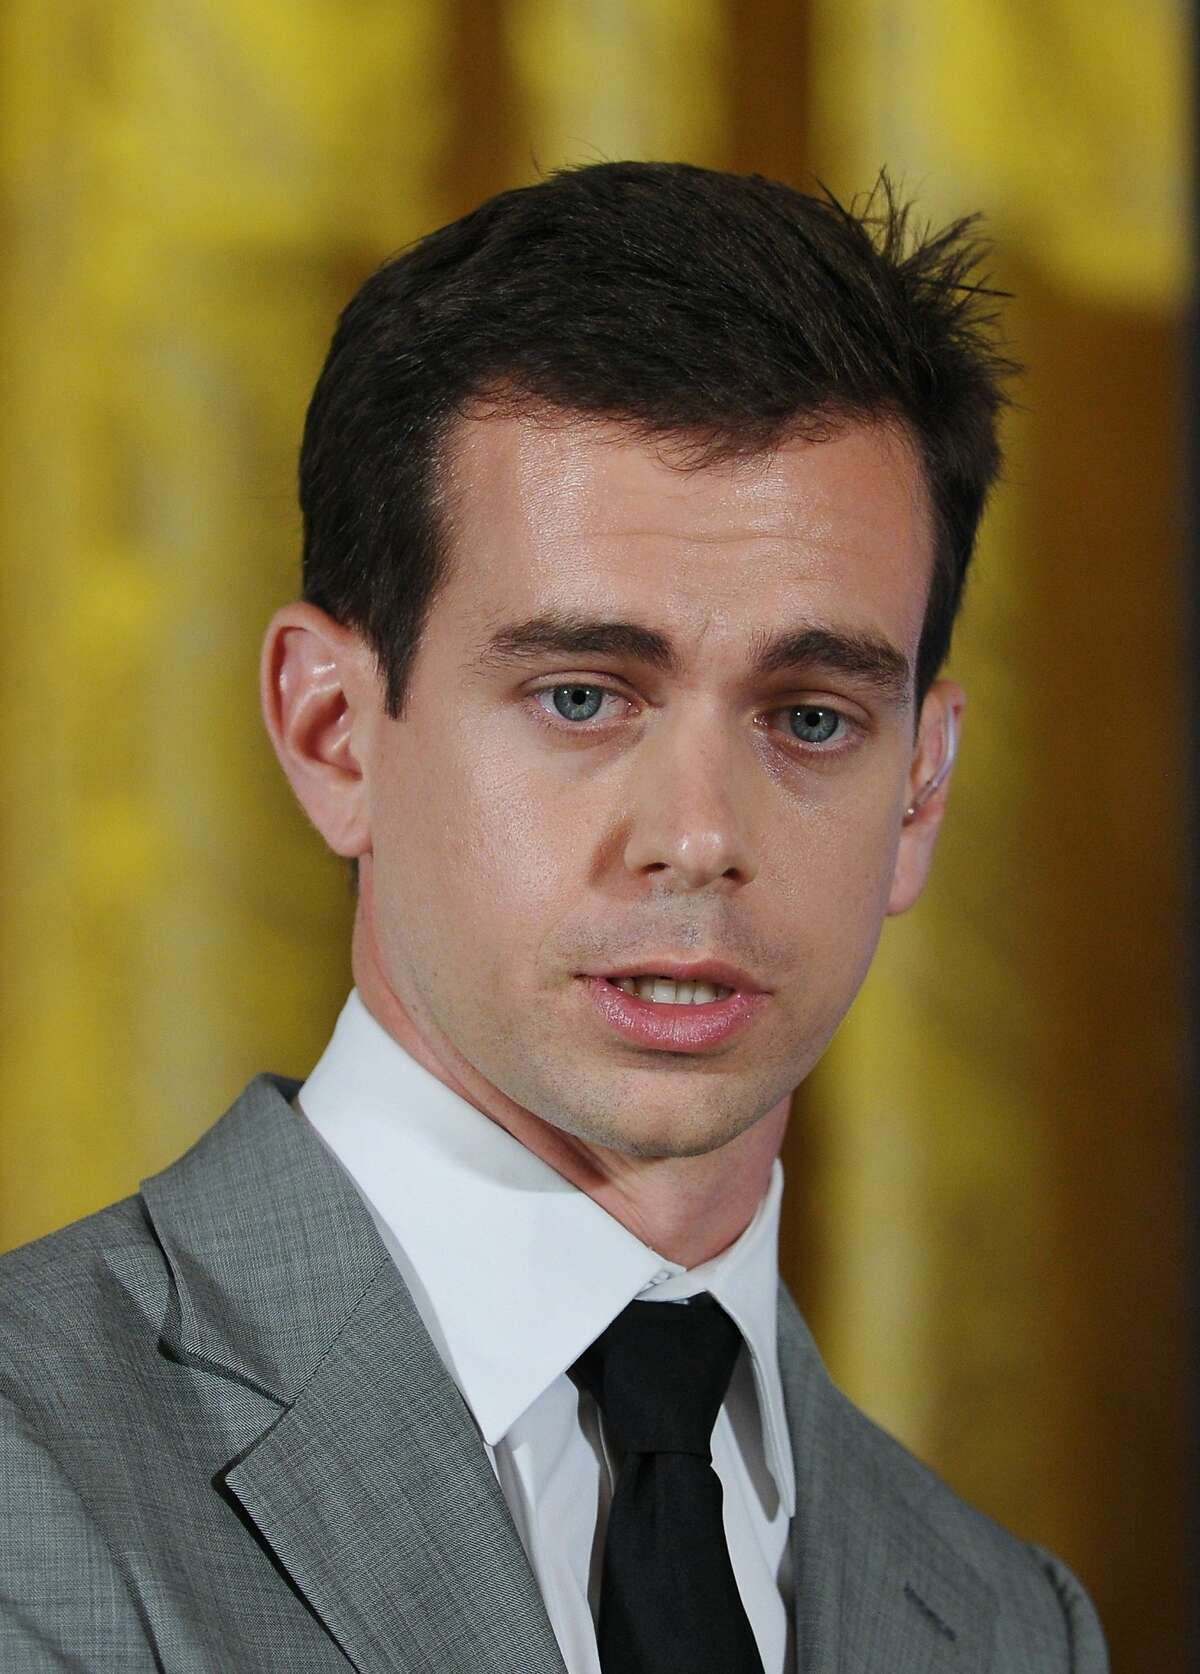 This July 6, 2011 file photo shows Twitter co-founder and Executive Chairman Jack Dorsey as he speaks during US President Barack Obama's Twitter Town Hall at the White House in Washington, DC. Mobile payments startup Square said November 6, 2015 it will raise up to $403 million in its stock offering -- but it may be valued less on Wall Street than by private investors. The company founded by Twitter's Jack Dorsey -- who is chief executive of both firms -- said in an updated regulatory filing it would sell 27 million shares in a range of $11 to $13, with an option to sell an additional four million shares depending on demand.